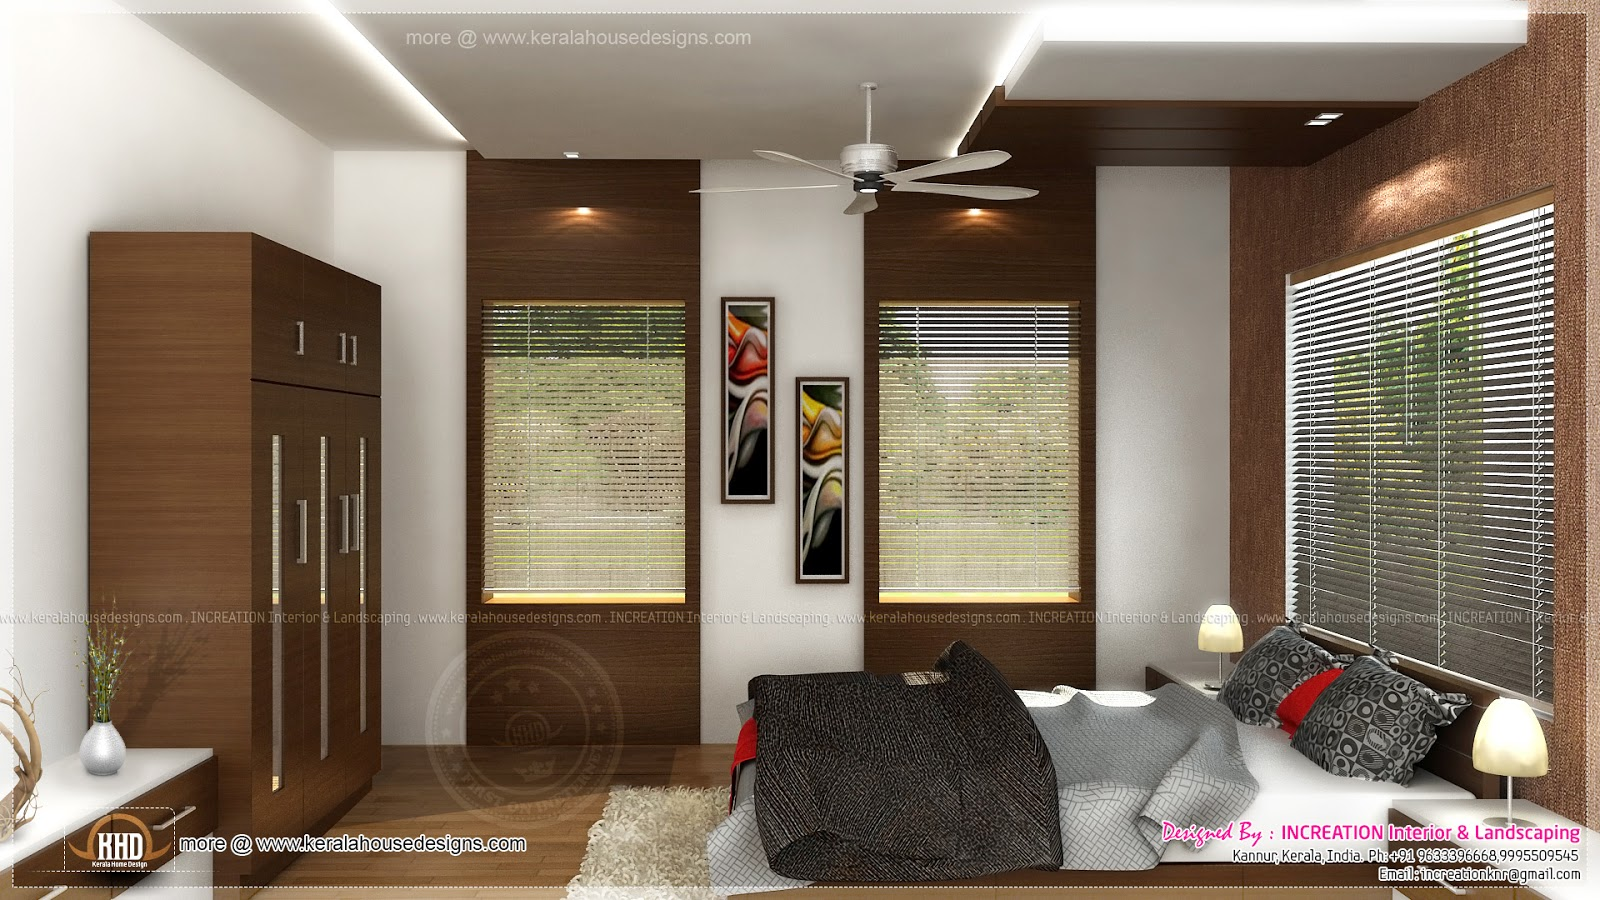 Interior designs from kannur kerala home kerala plans for House of interior design